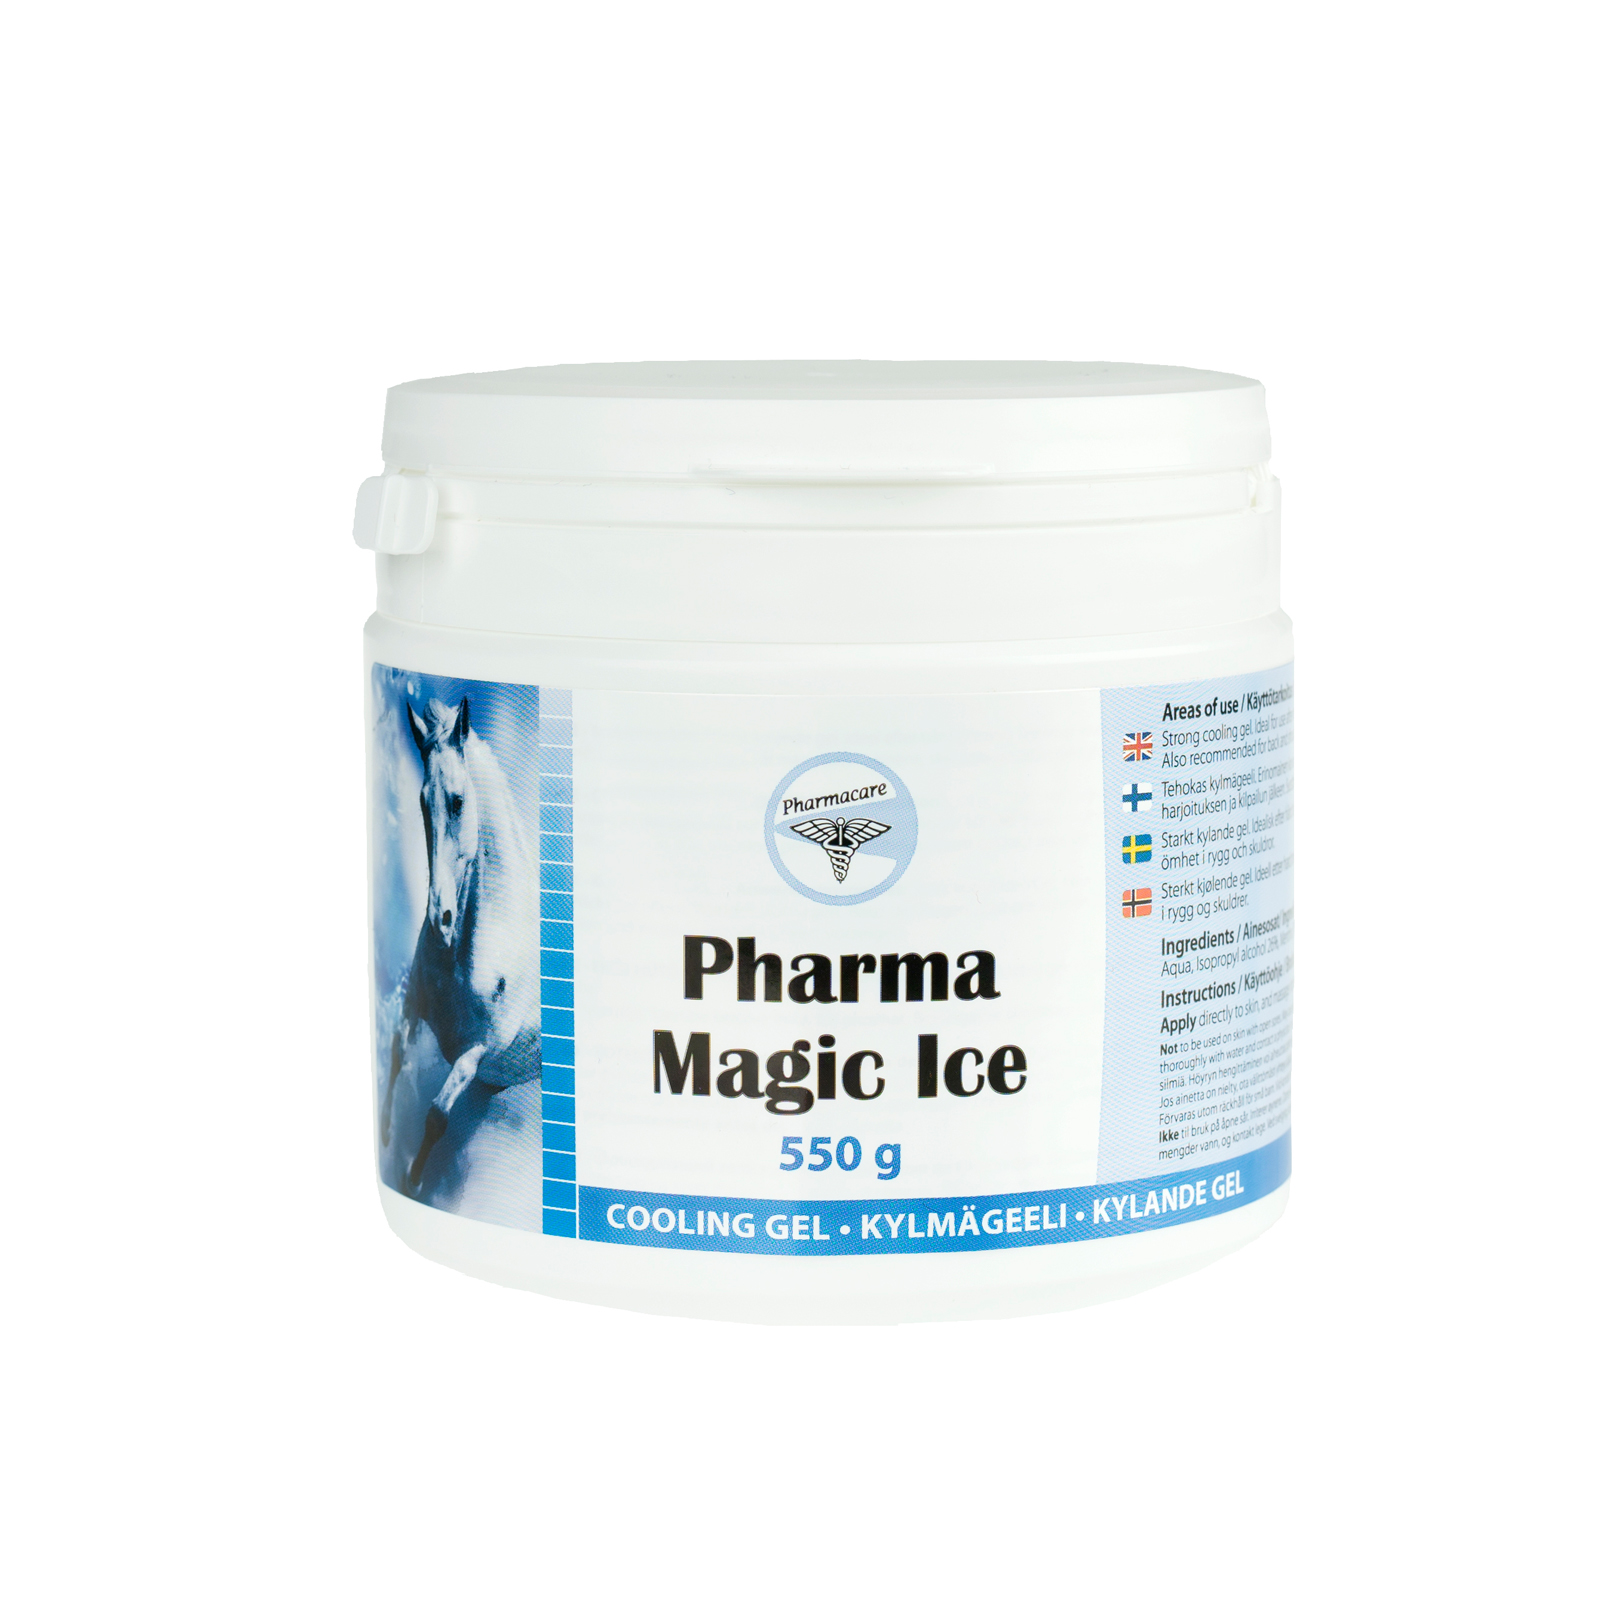 Pharma Magic Ice 550 g